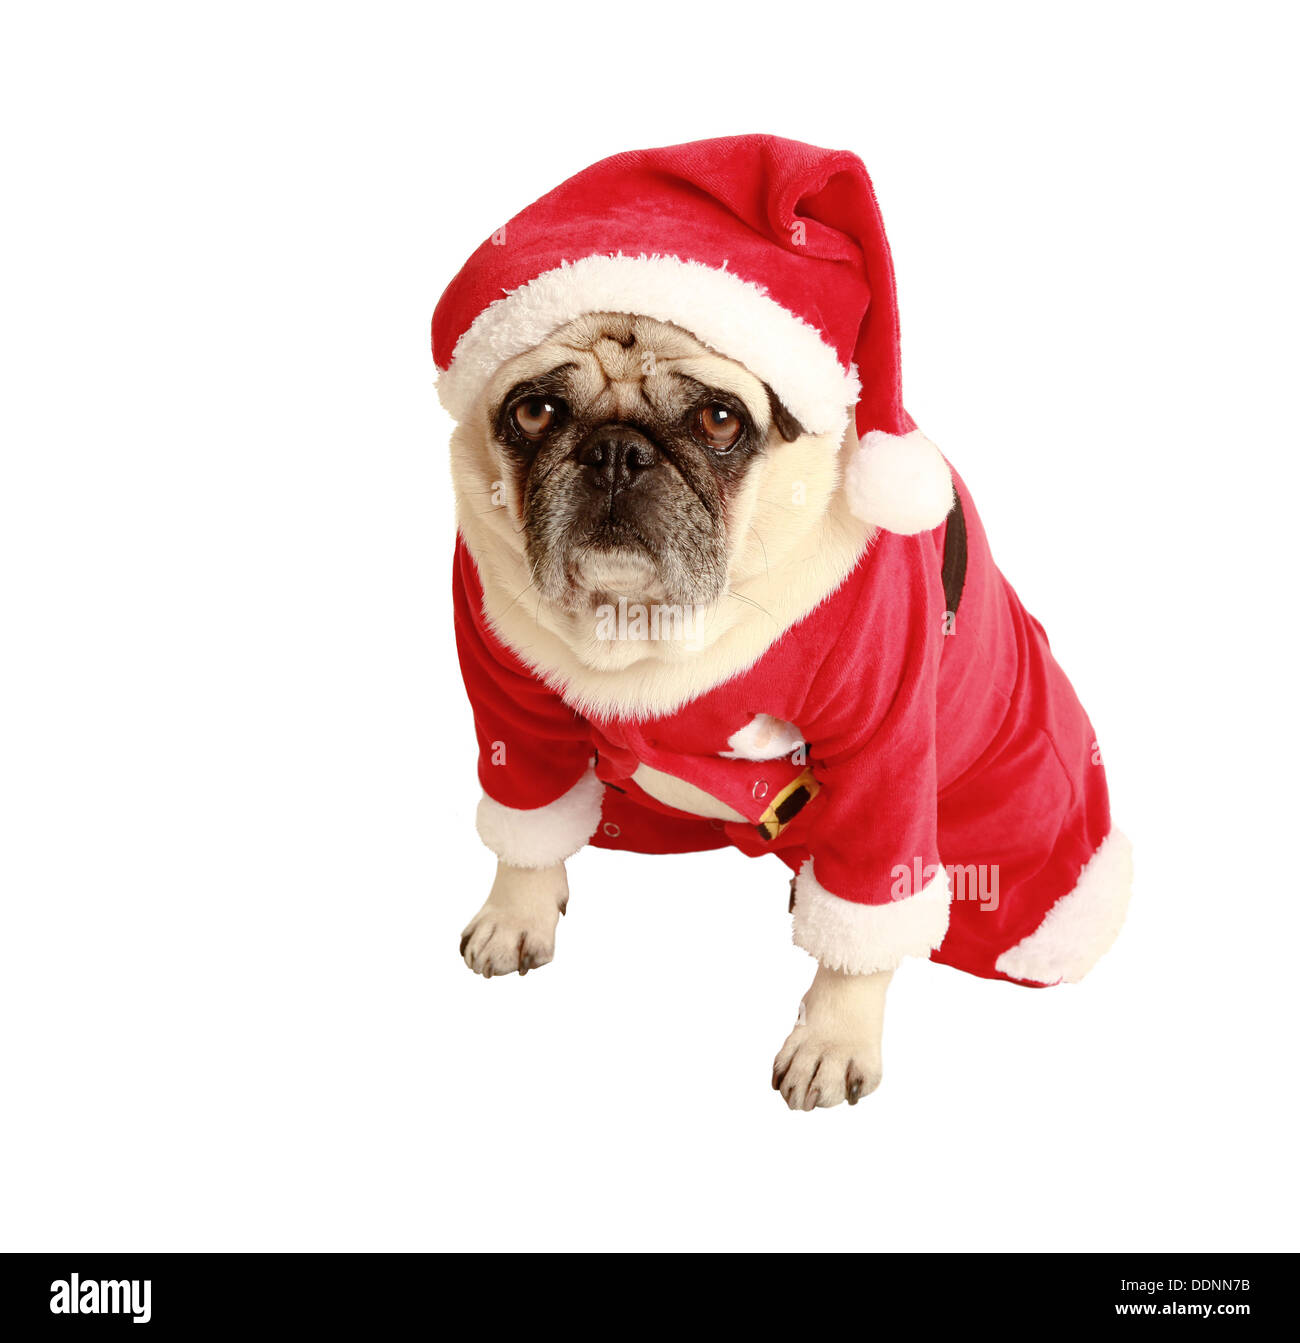 pug in red Santa costume, exempted, white background, dressed as Santa Claus, dog looking at the camera, isolated - Stock Image